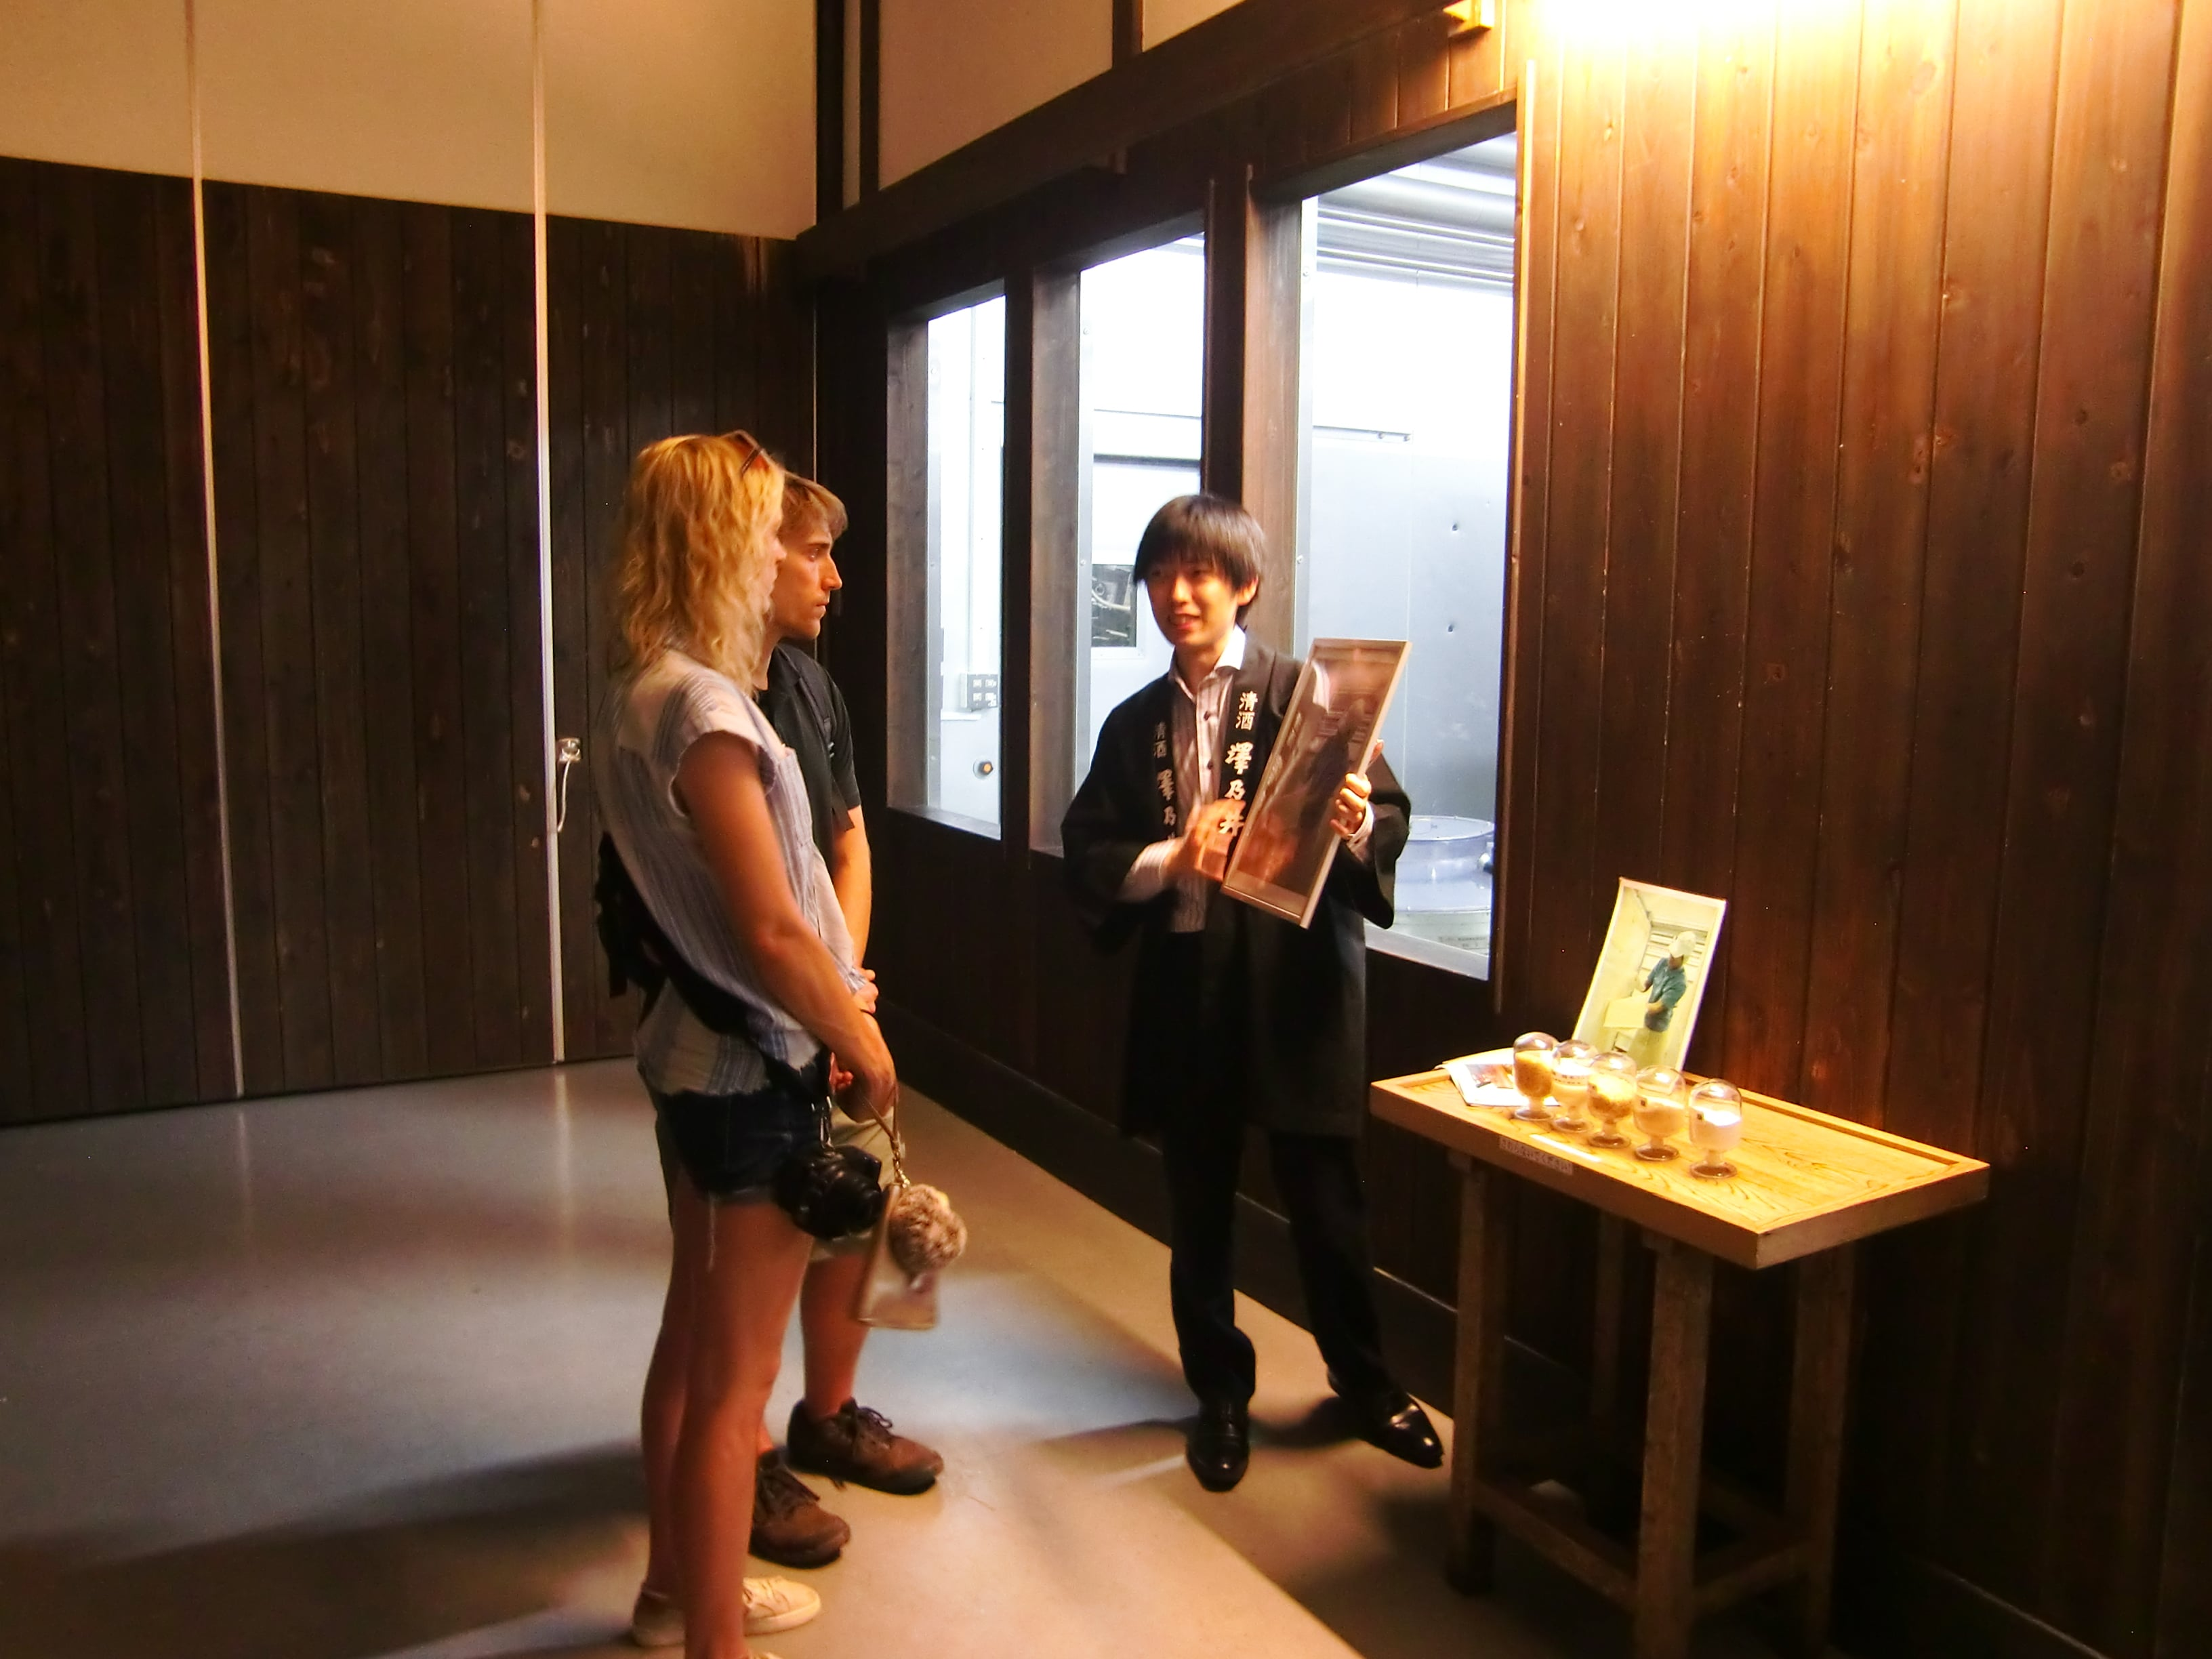 A man guides to the Sake brewery